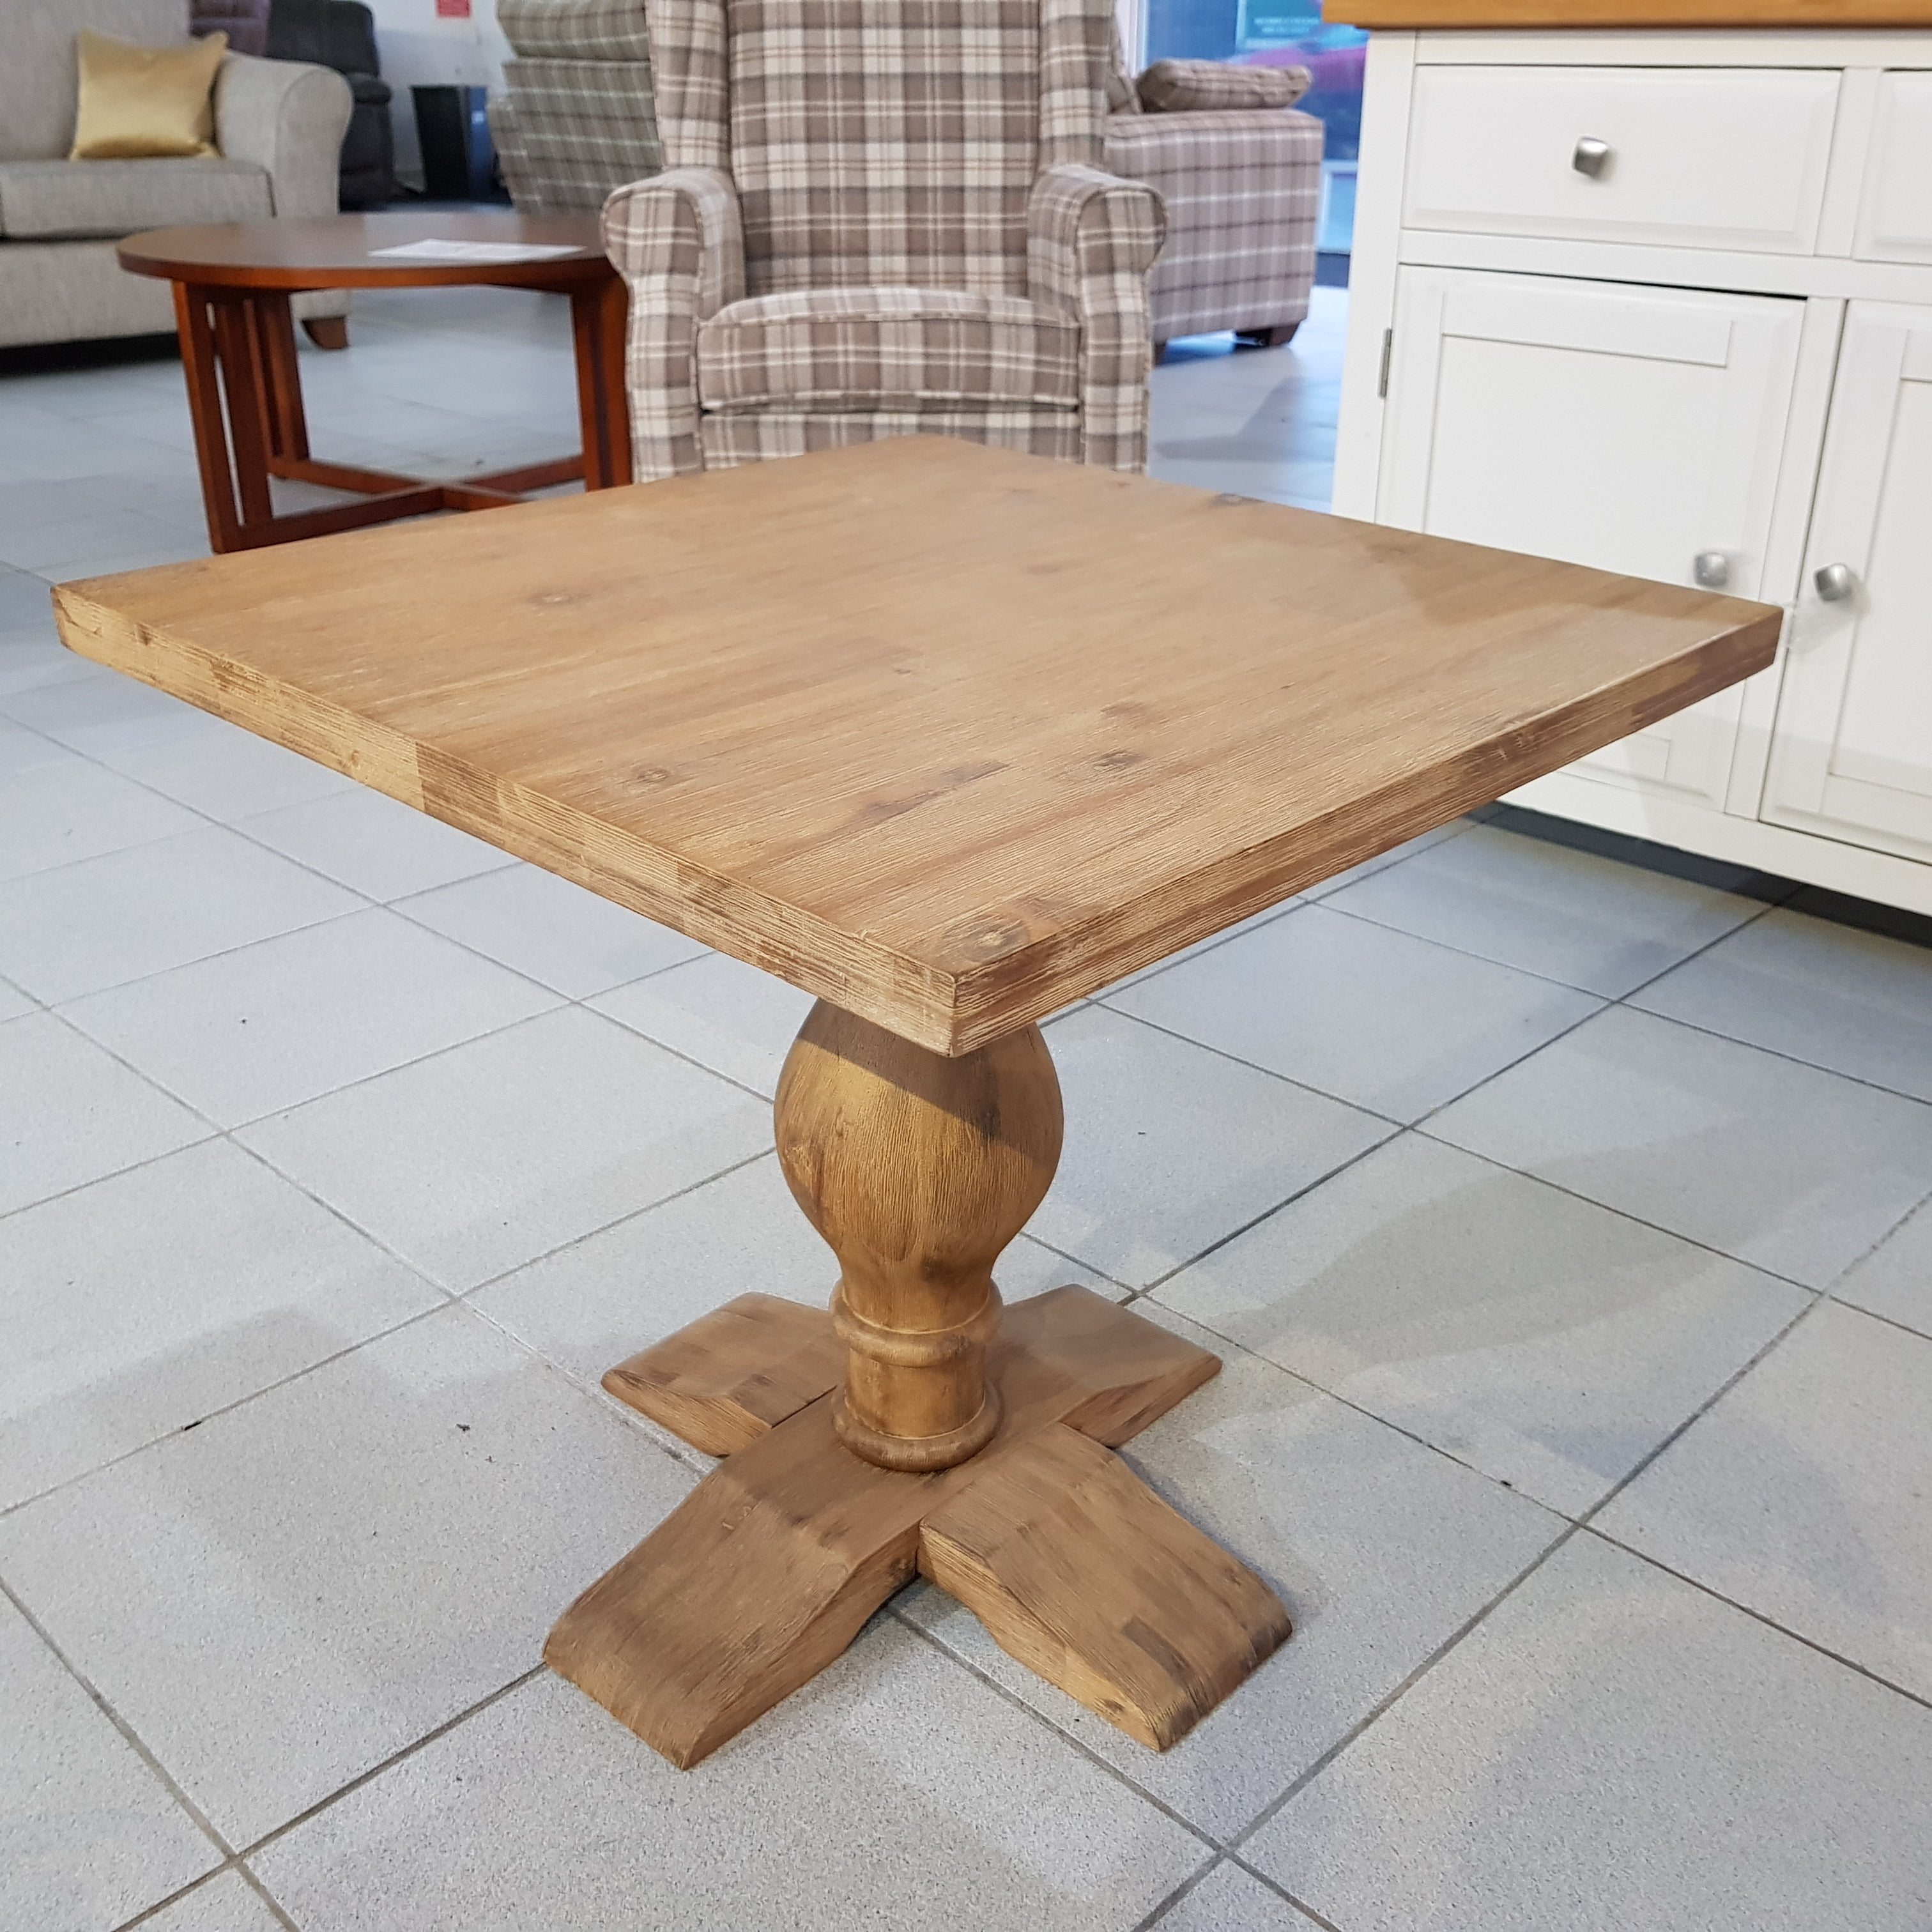 Discontinued ex Display Side Table In Distressed Acacia Wood